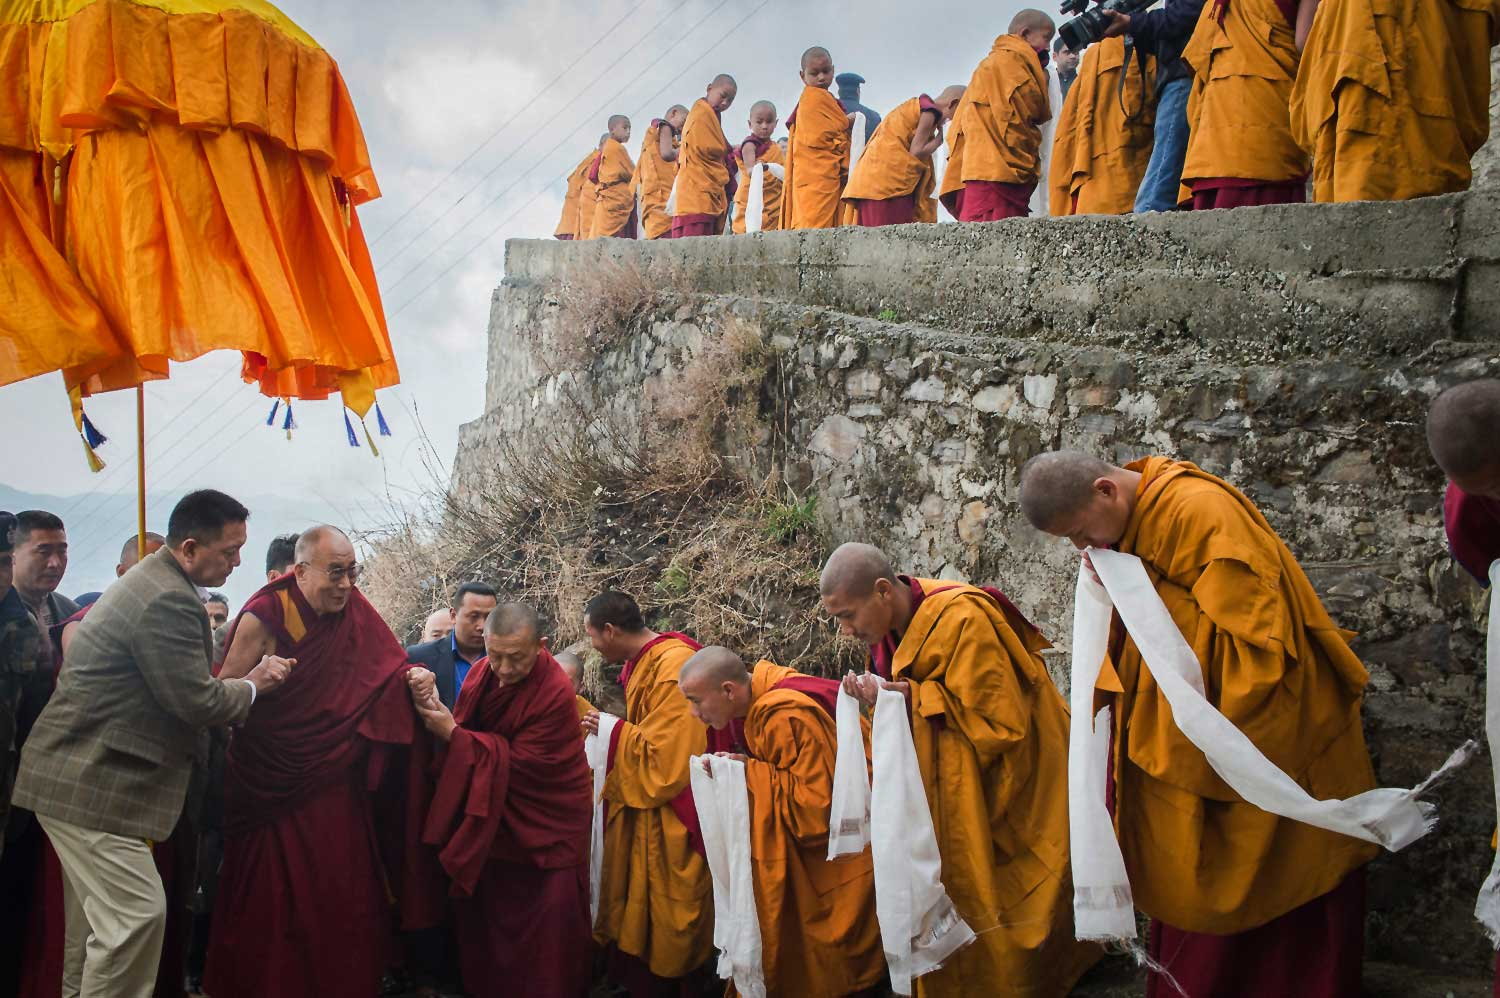 Tibetan Buddhist monks holding ceremonial scarfs stand in a line to welcome the Dalai Lama as he arrives at the Jhonang Takten Phuntsok Choeling monastery in Shimla, India, in March 2014.